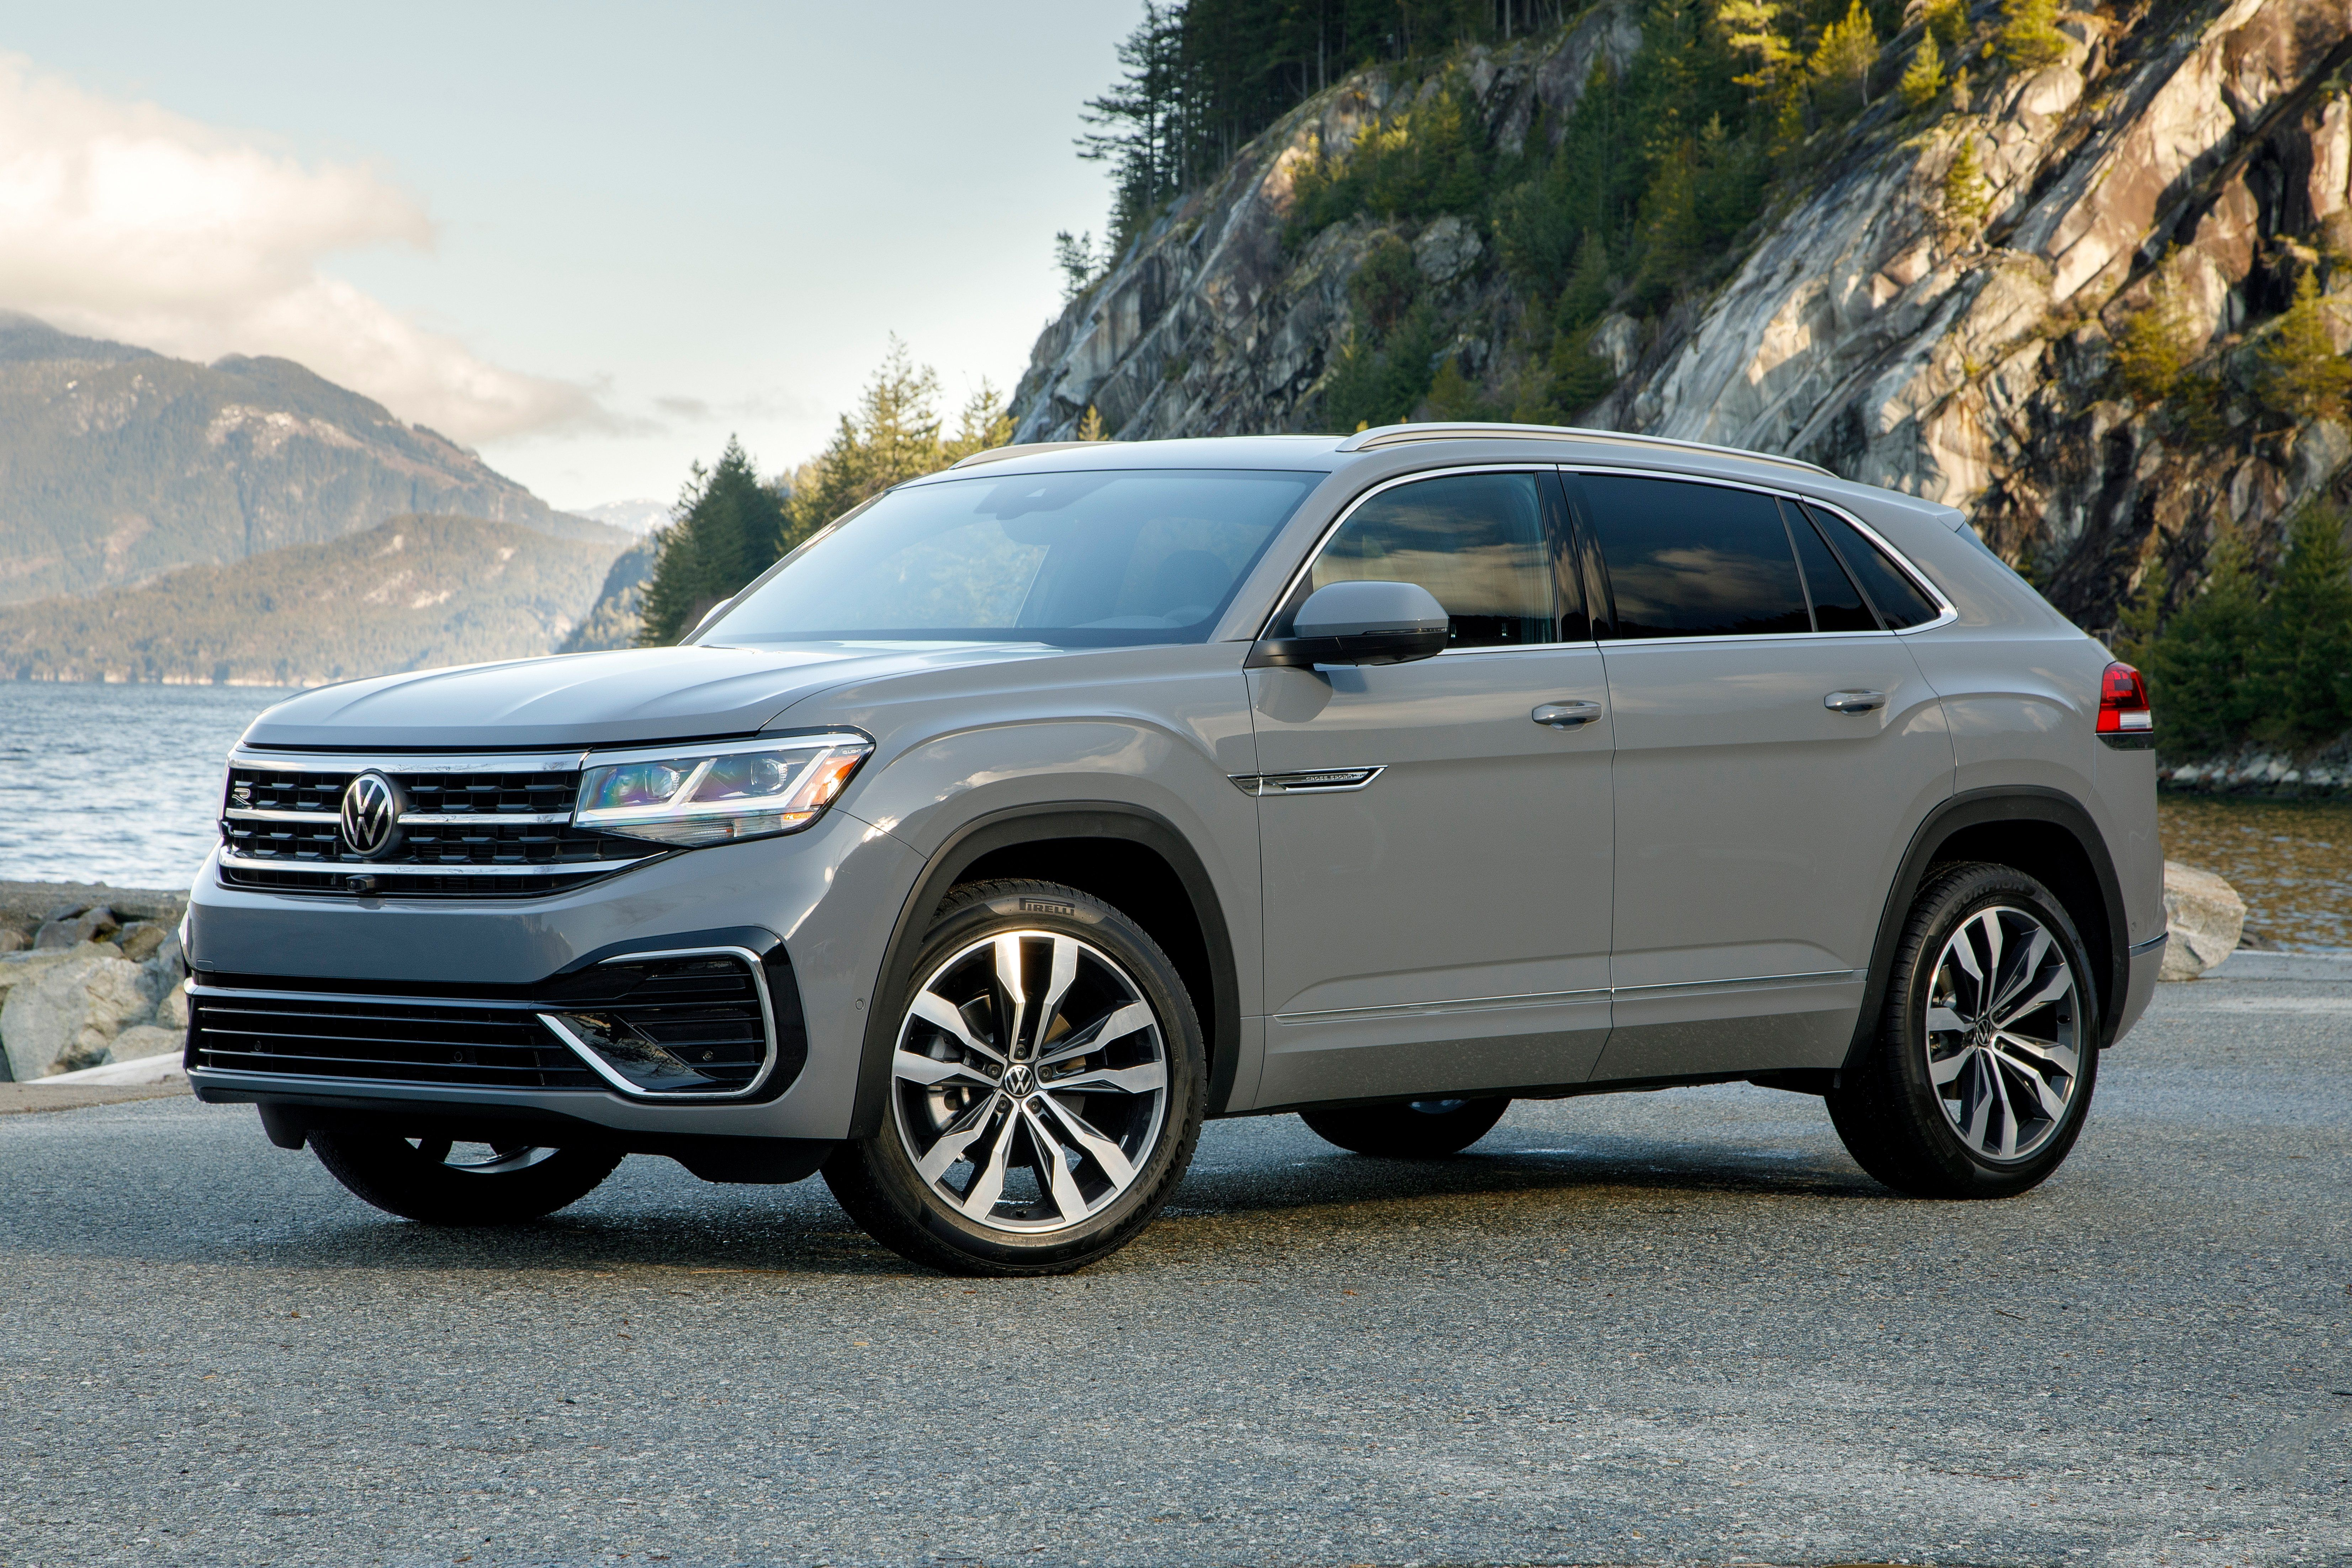 2020 Atlas Cross Sport SEL in 2020 Volkswagen, Car